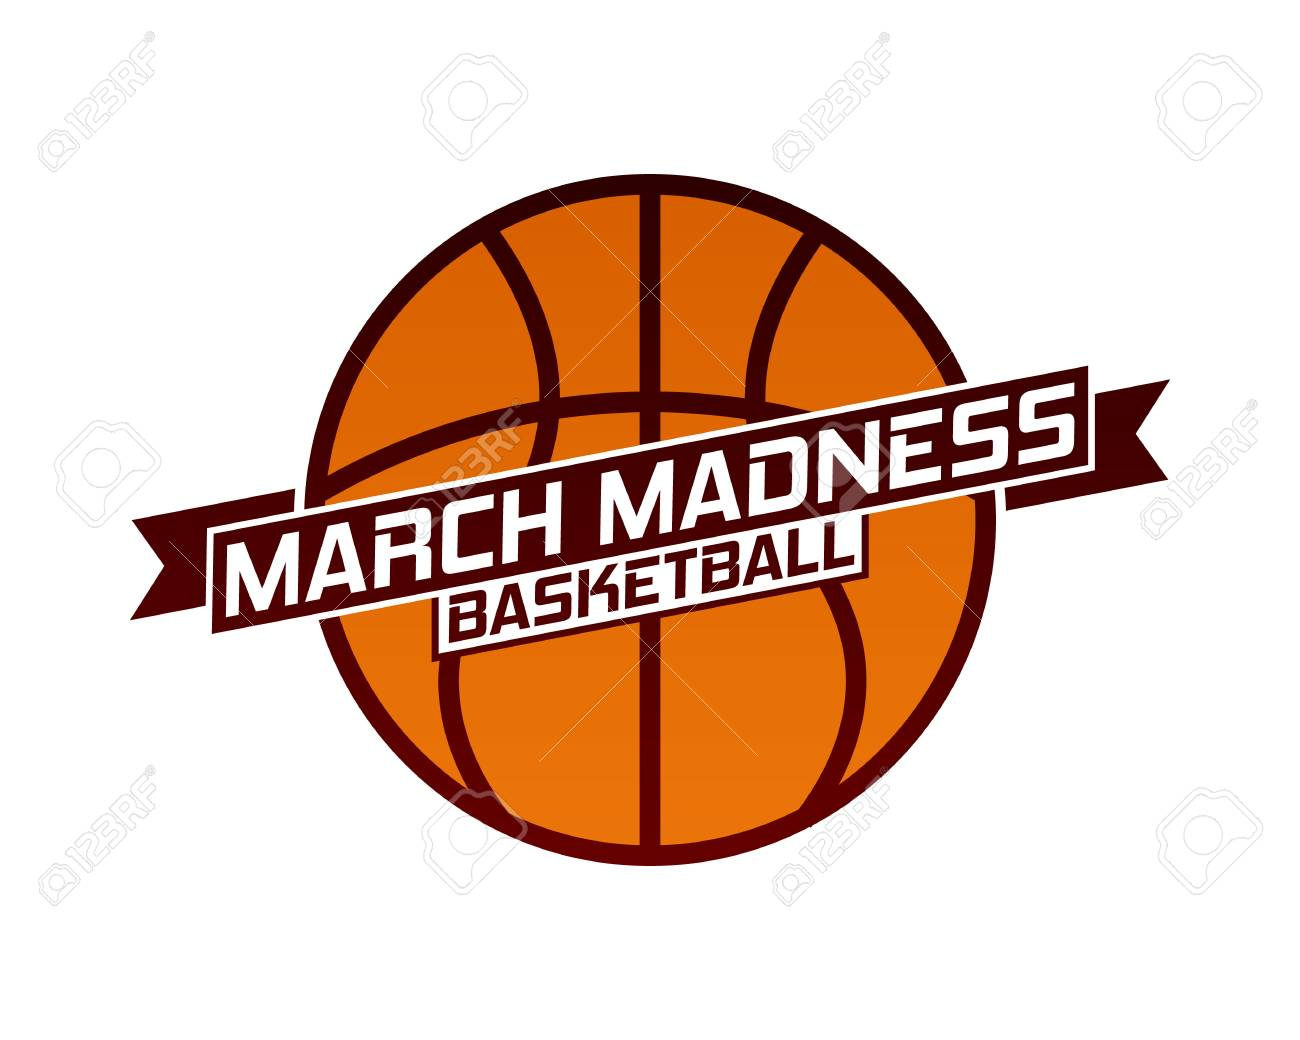 march madness basketball sport design. basketball tournament.. royalty free  cliparts, vectors, and stock illustration. image 117128583.  123rf